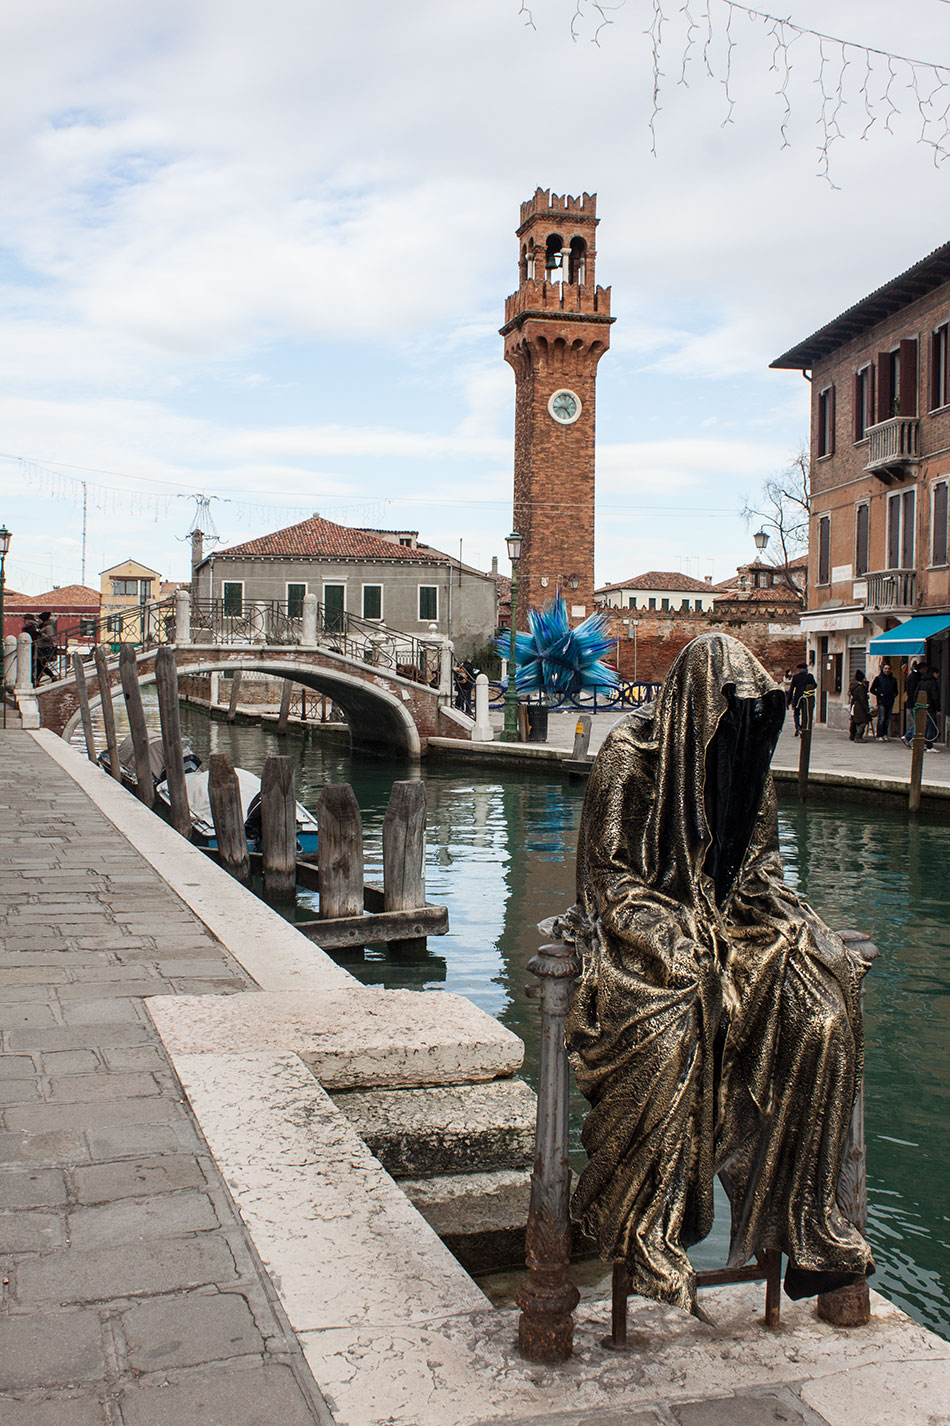 Italia-Venice-Murano-Berengo-glas-studio-glasstress-guardians-of-time-by-Manfred-Kili-Kielnhofer-contemporary-art-design-show-7180